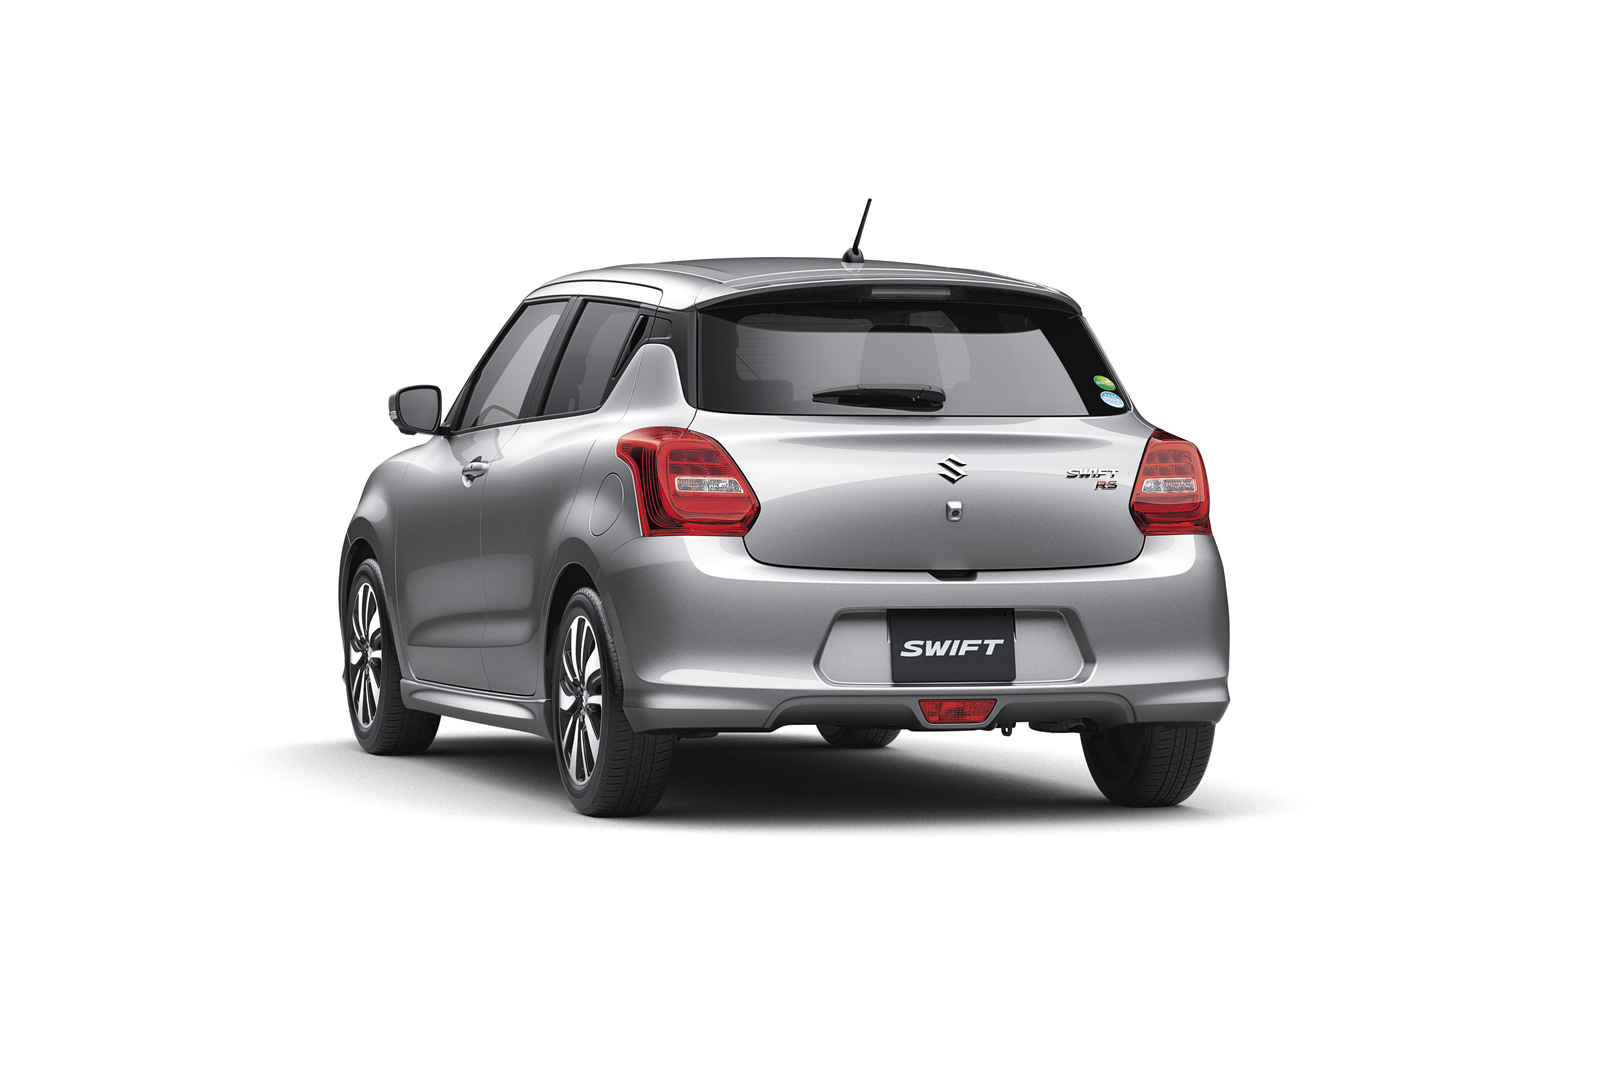 Suzuki Swift 2017 (12)